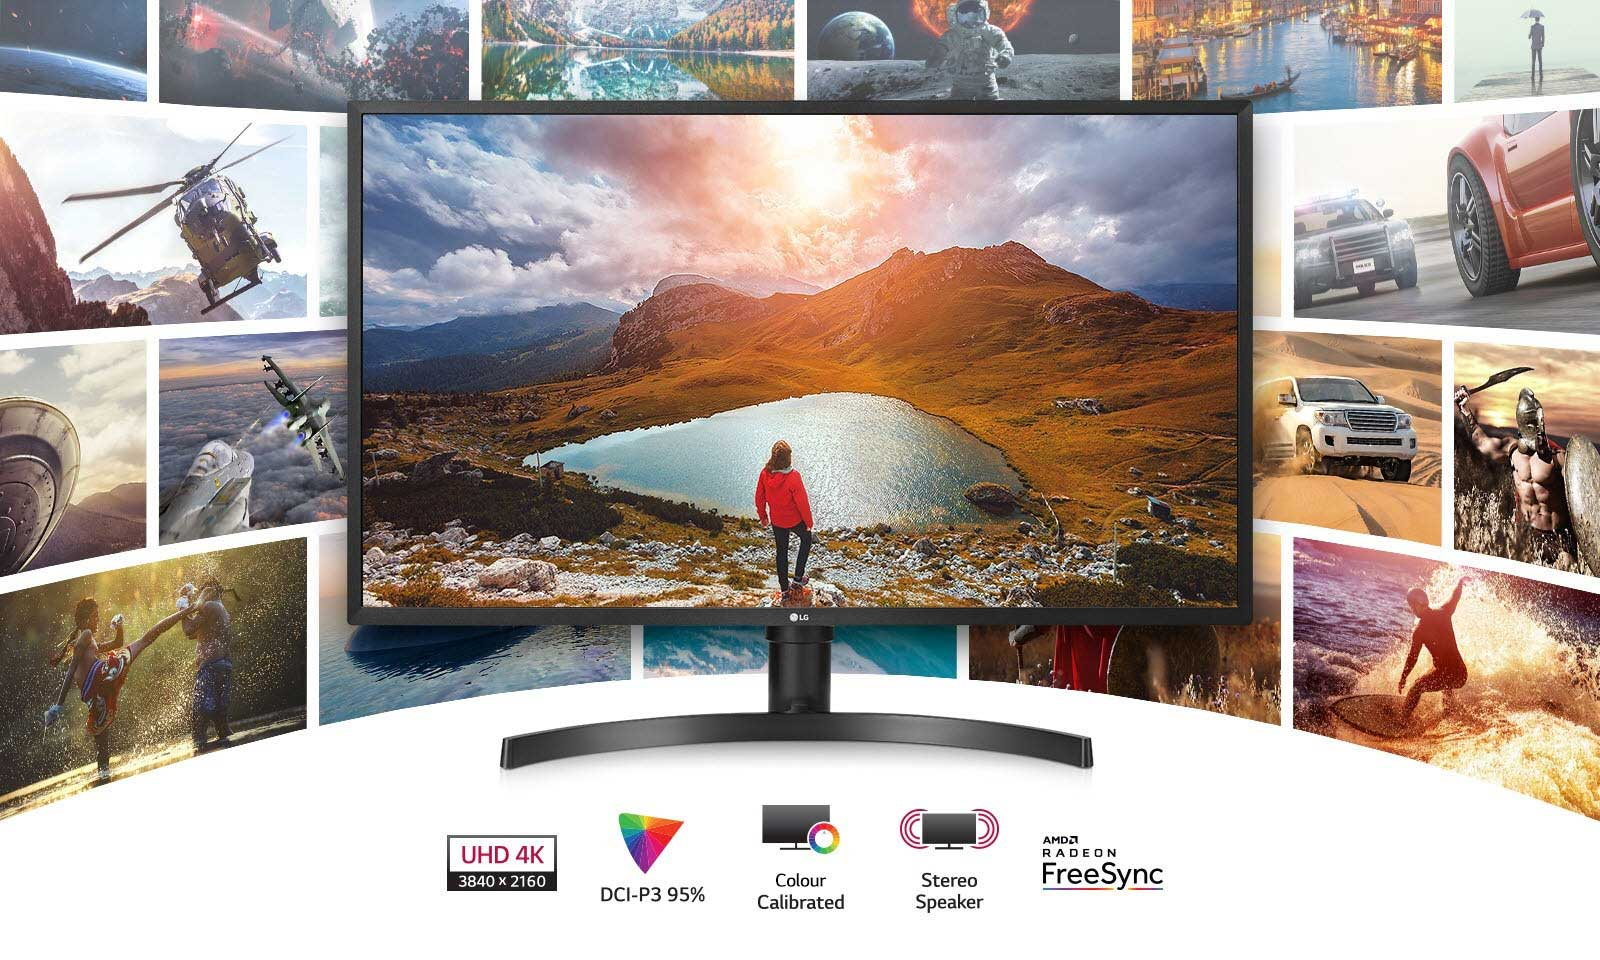 LG 32UK550-B monitor facing forward with a person in front of lake on a mountain top. There are also logos for UHD 4K, DCI-P3 95%, Color Calibrated, Stereo Speaker and RADEON FreeSync and shots of video games behind the monitor